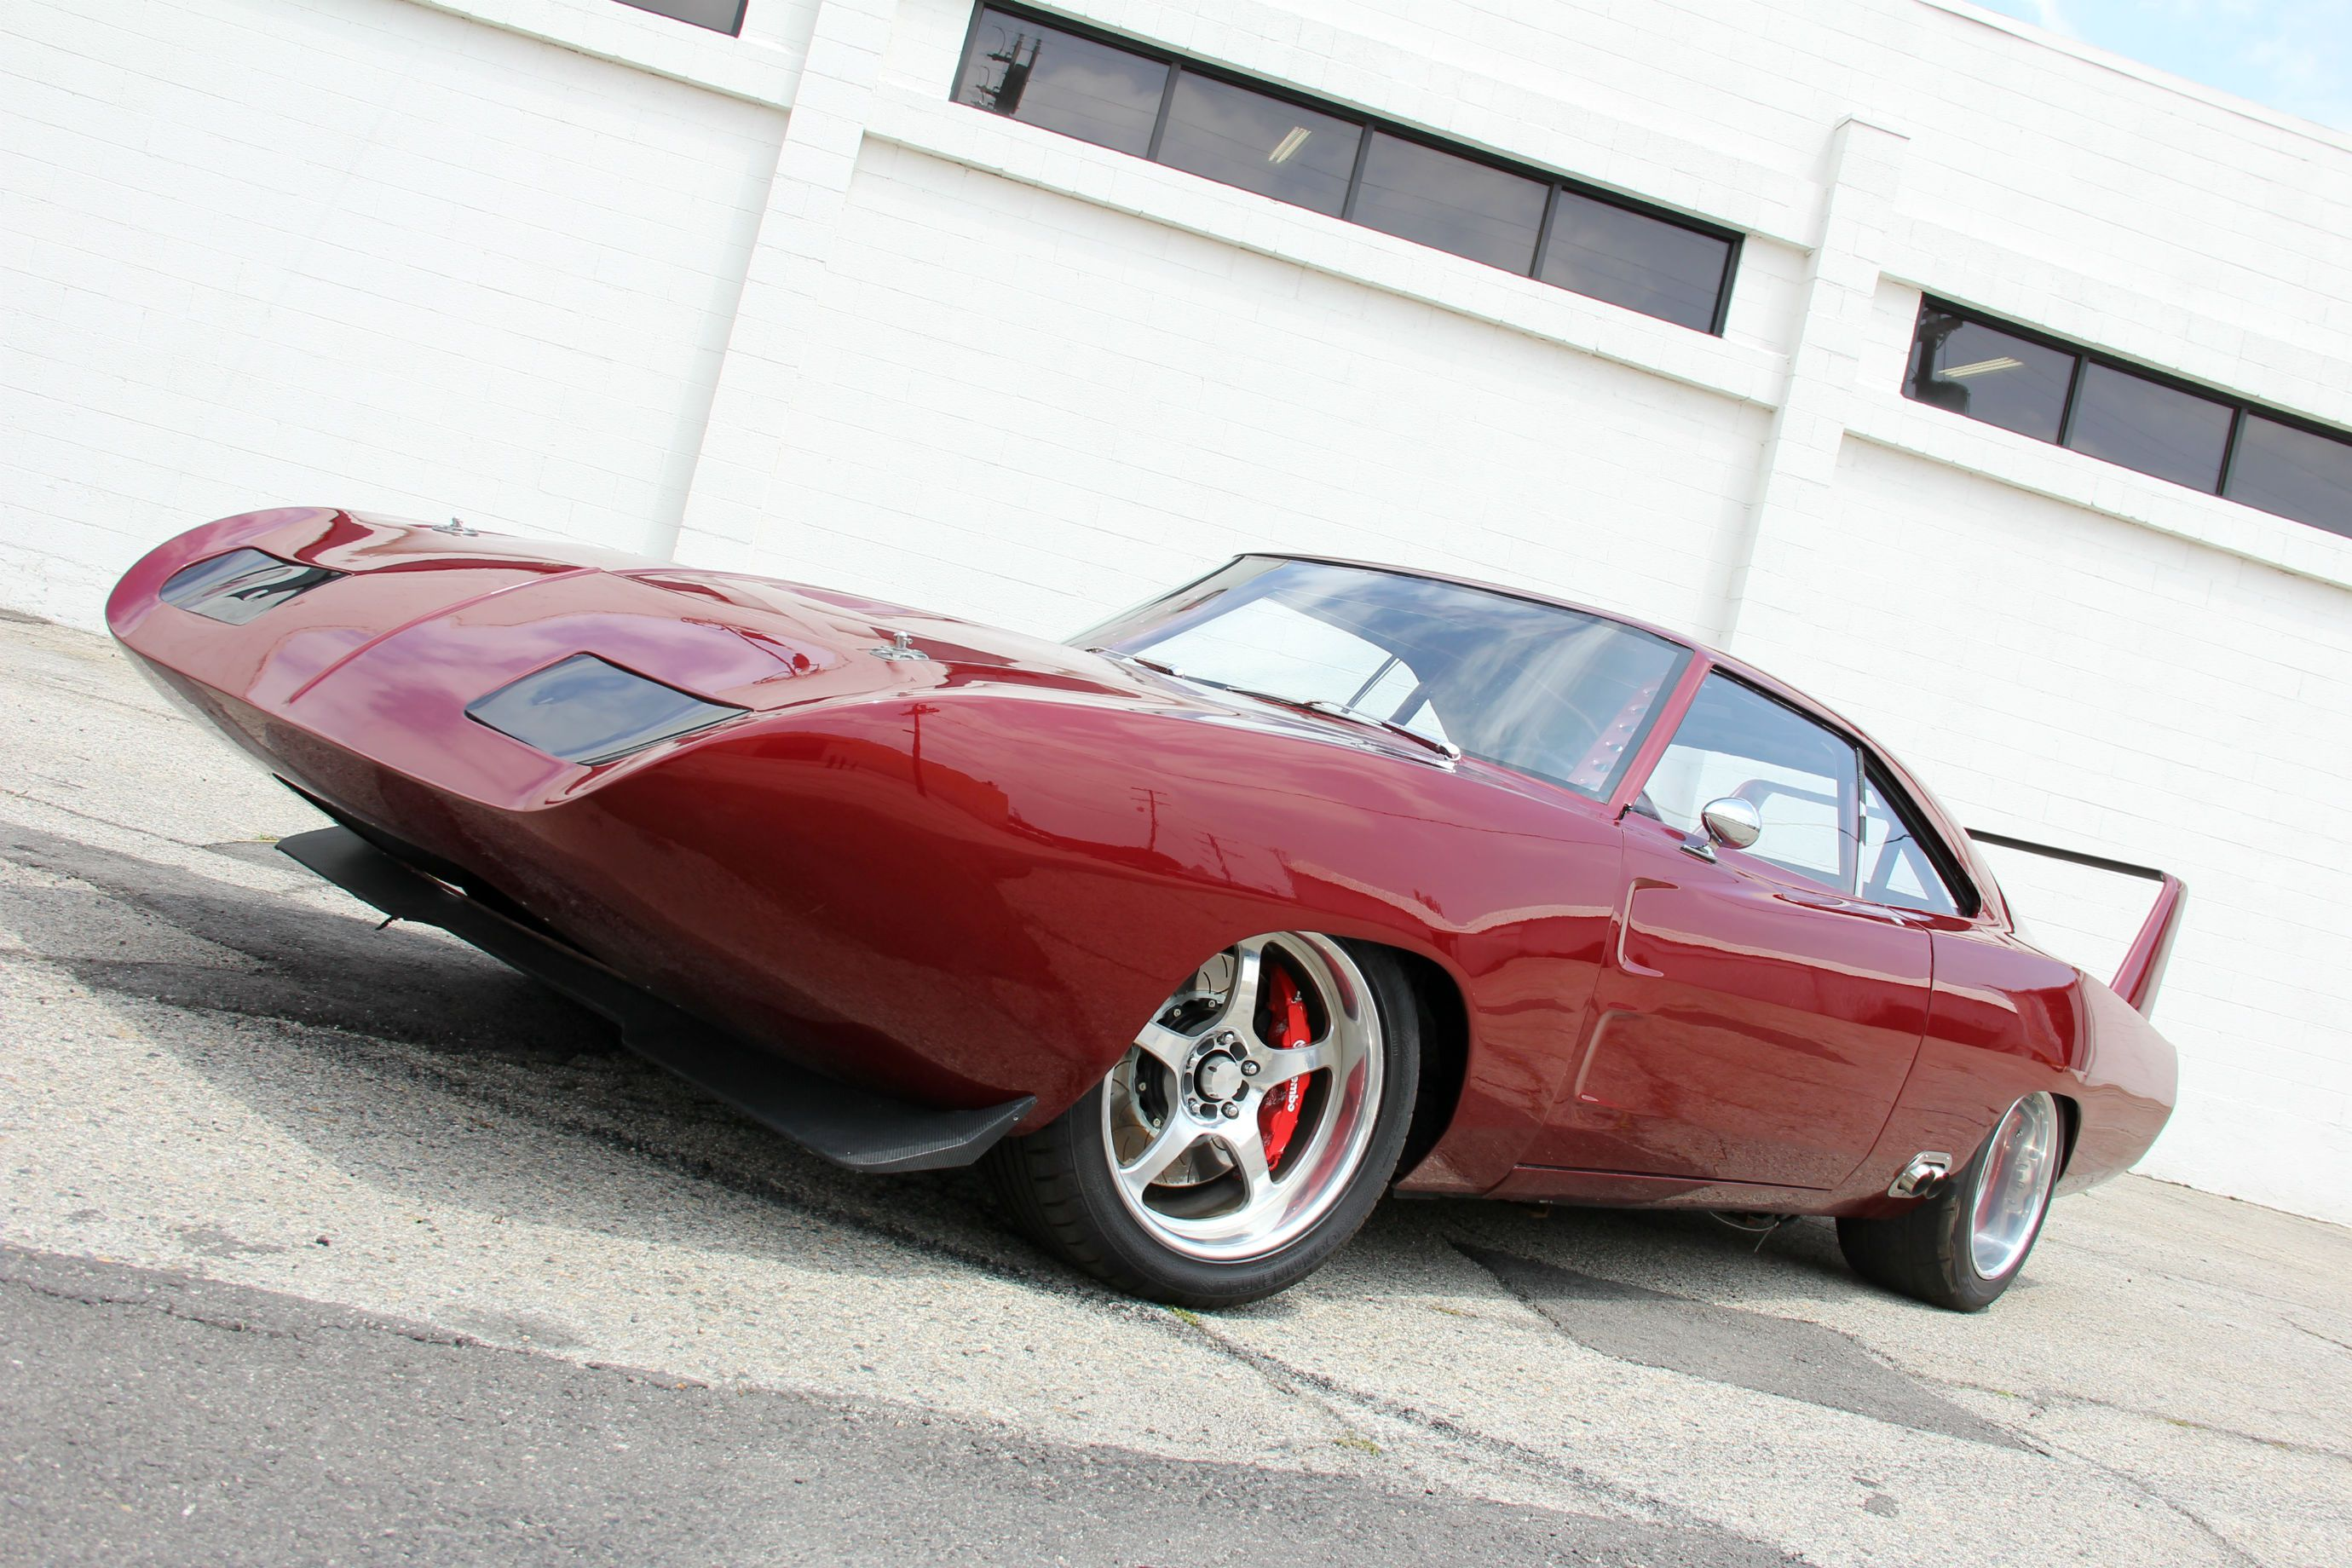 1969 Dodge Charger Daytona Wallpaper Posted By Ethan Anderson